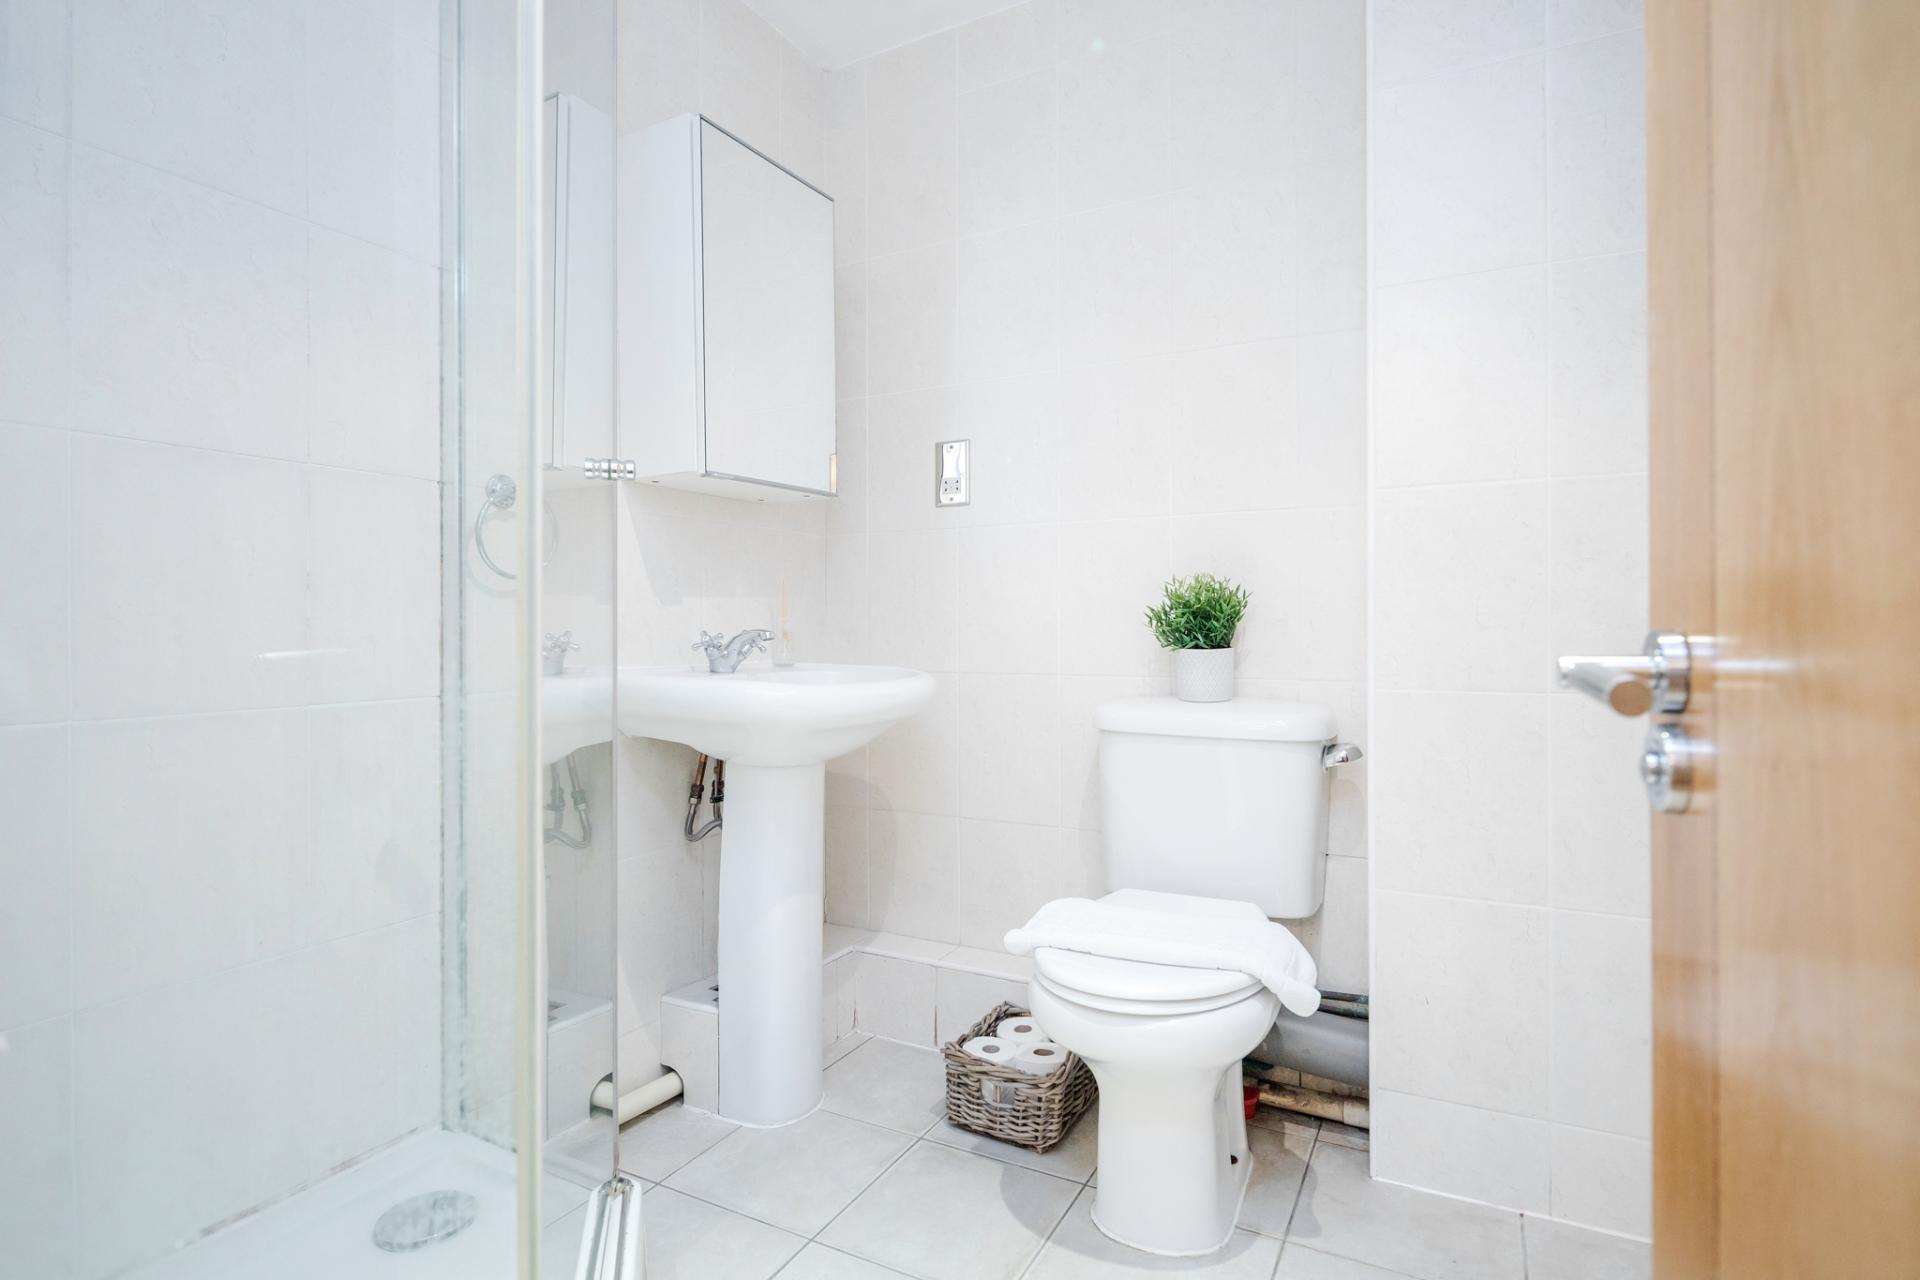 Bathroom at St Georges Wharf Apartment, Vauxhall, London - Citybase Apartments